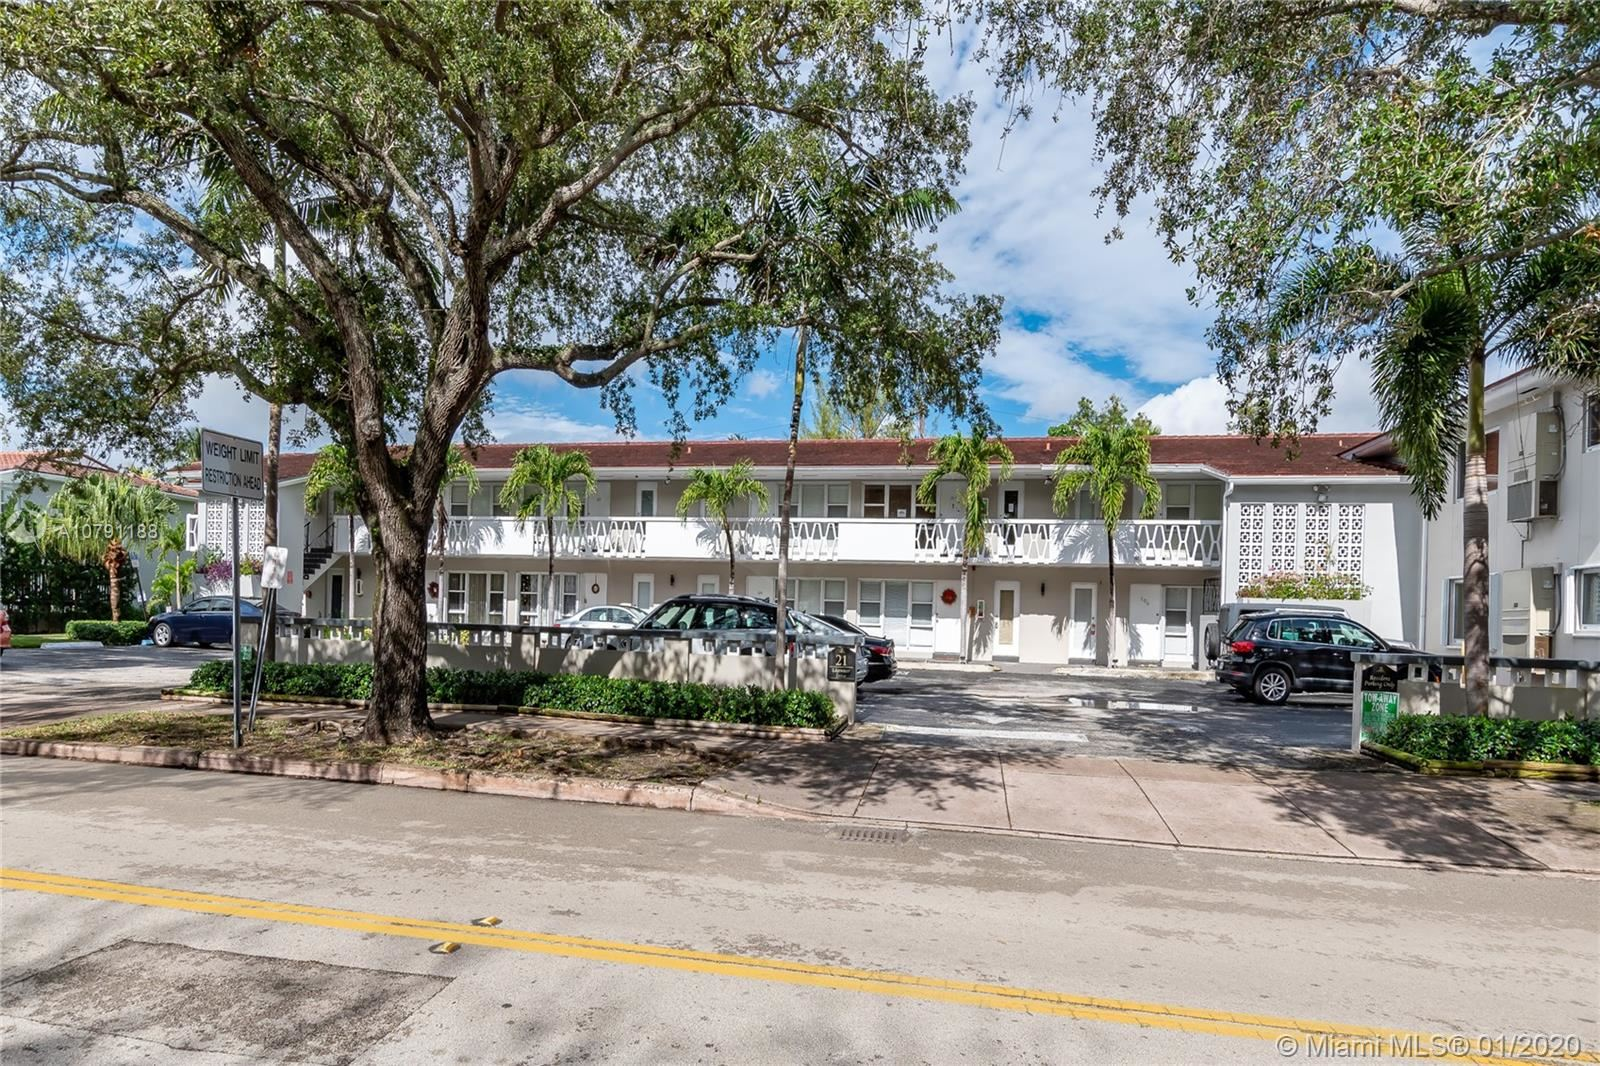 21 Edgewater Dr #207, Coral Gables, FL 33133 - #: A10791188